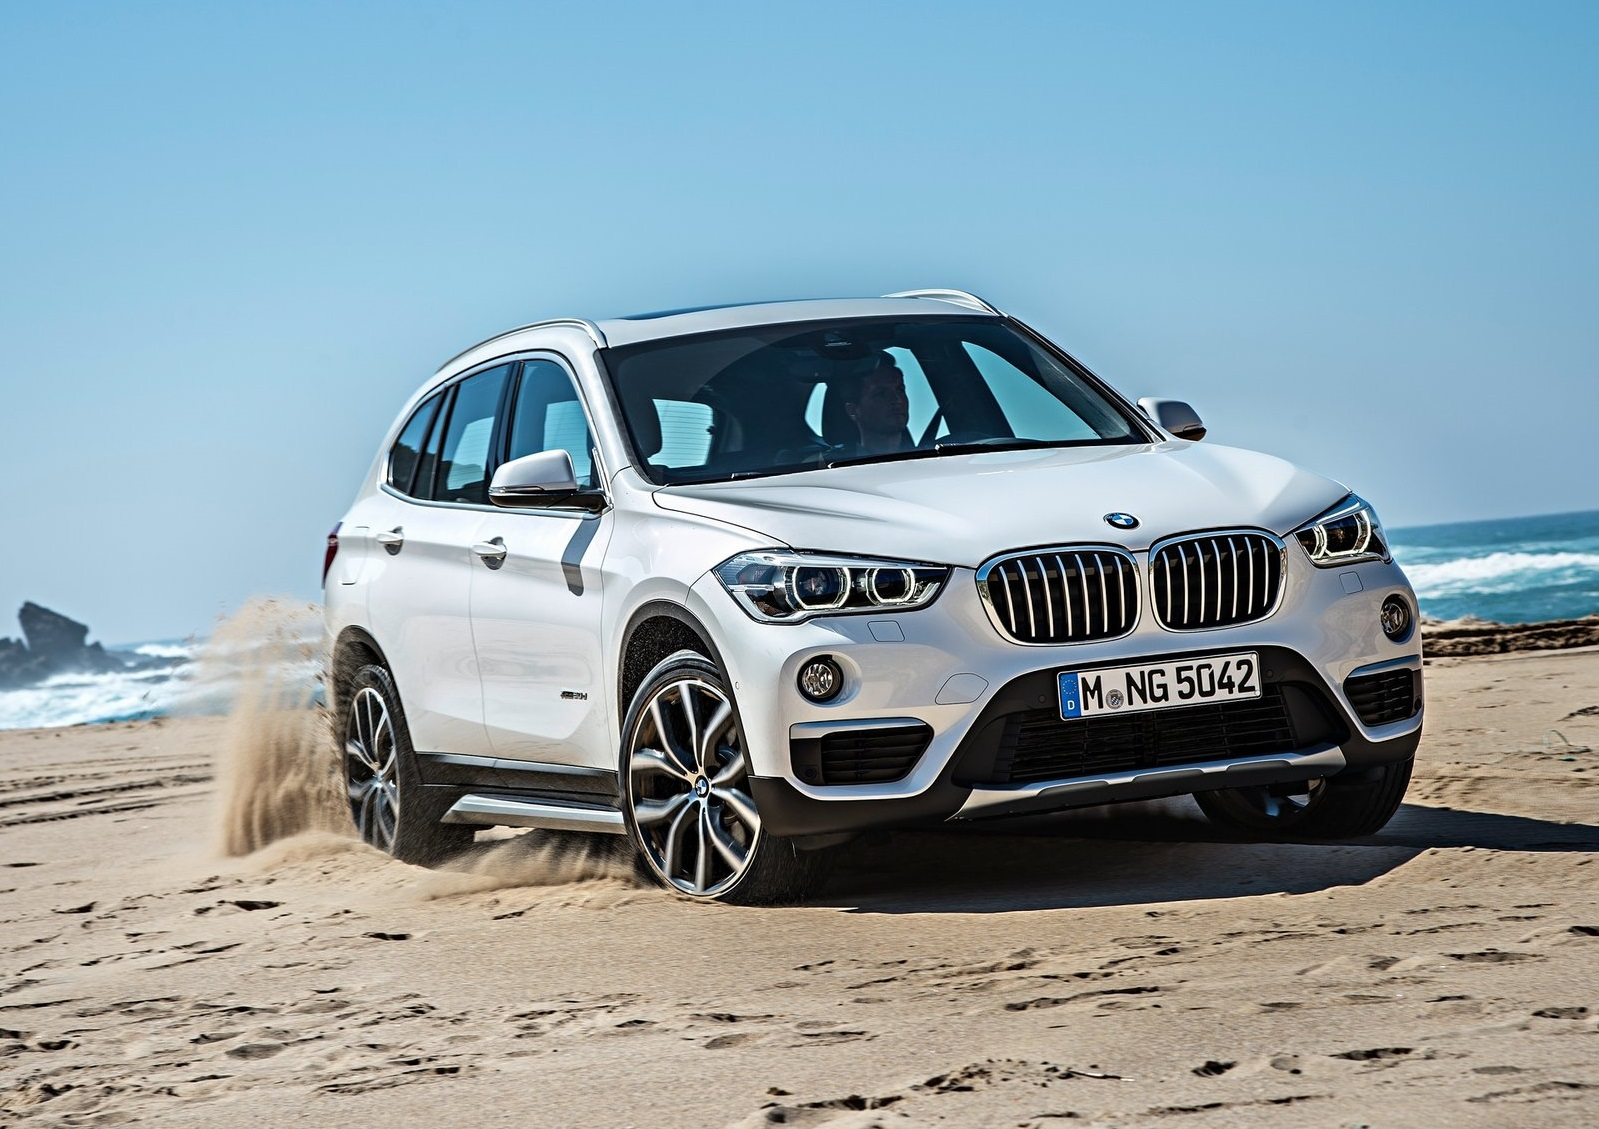 Bmw Usa Sales Drop 2 4 As Luxury Segment Shrinks Overall